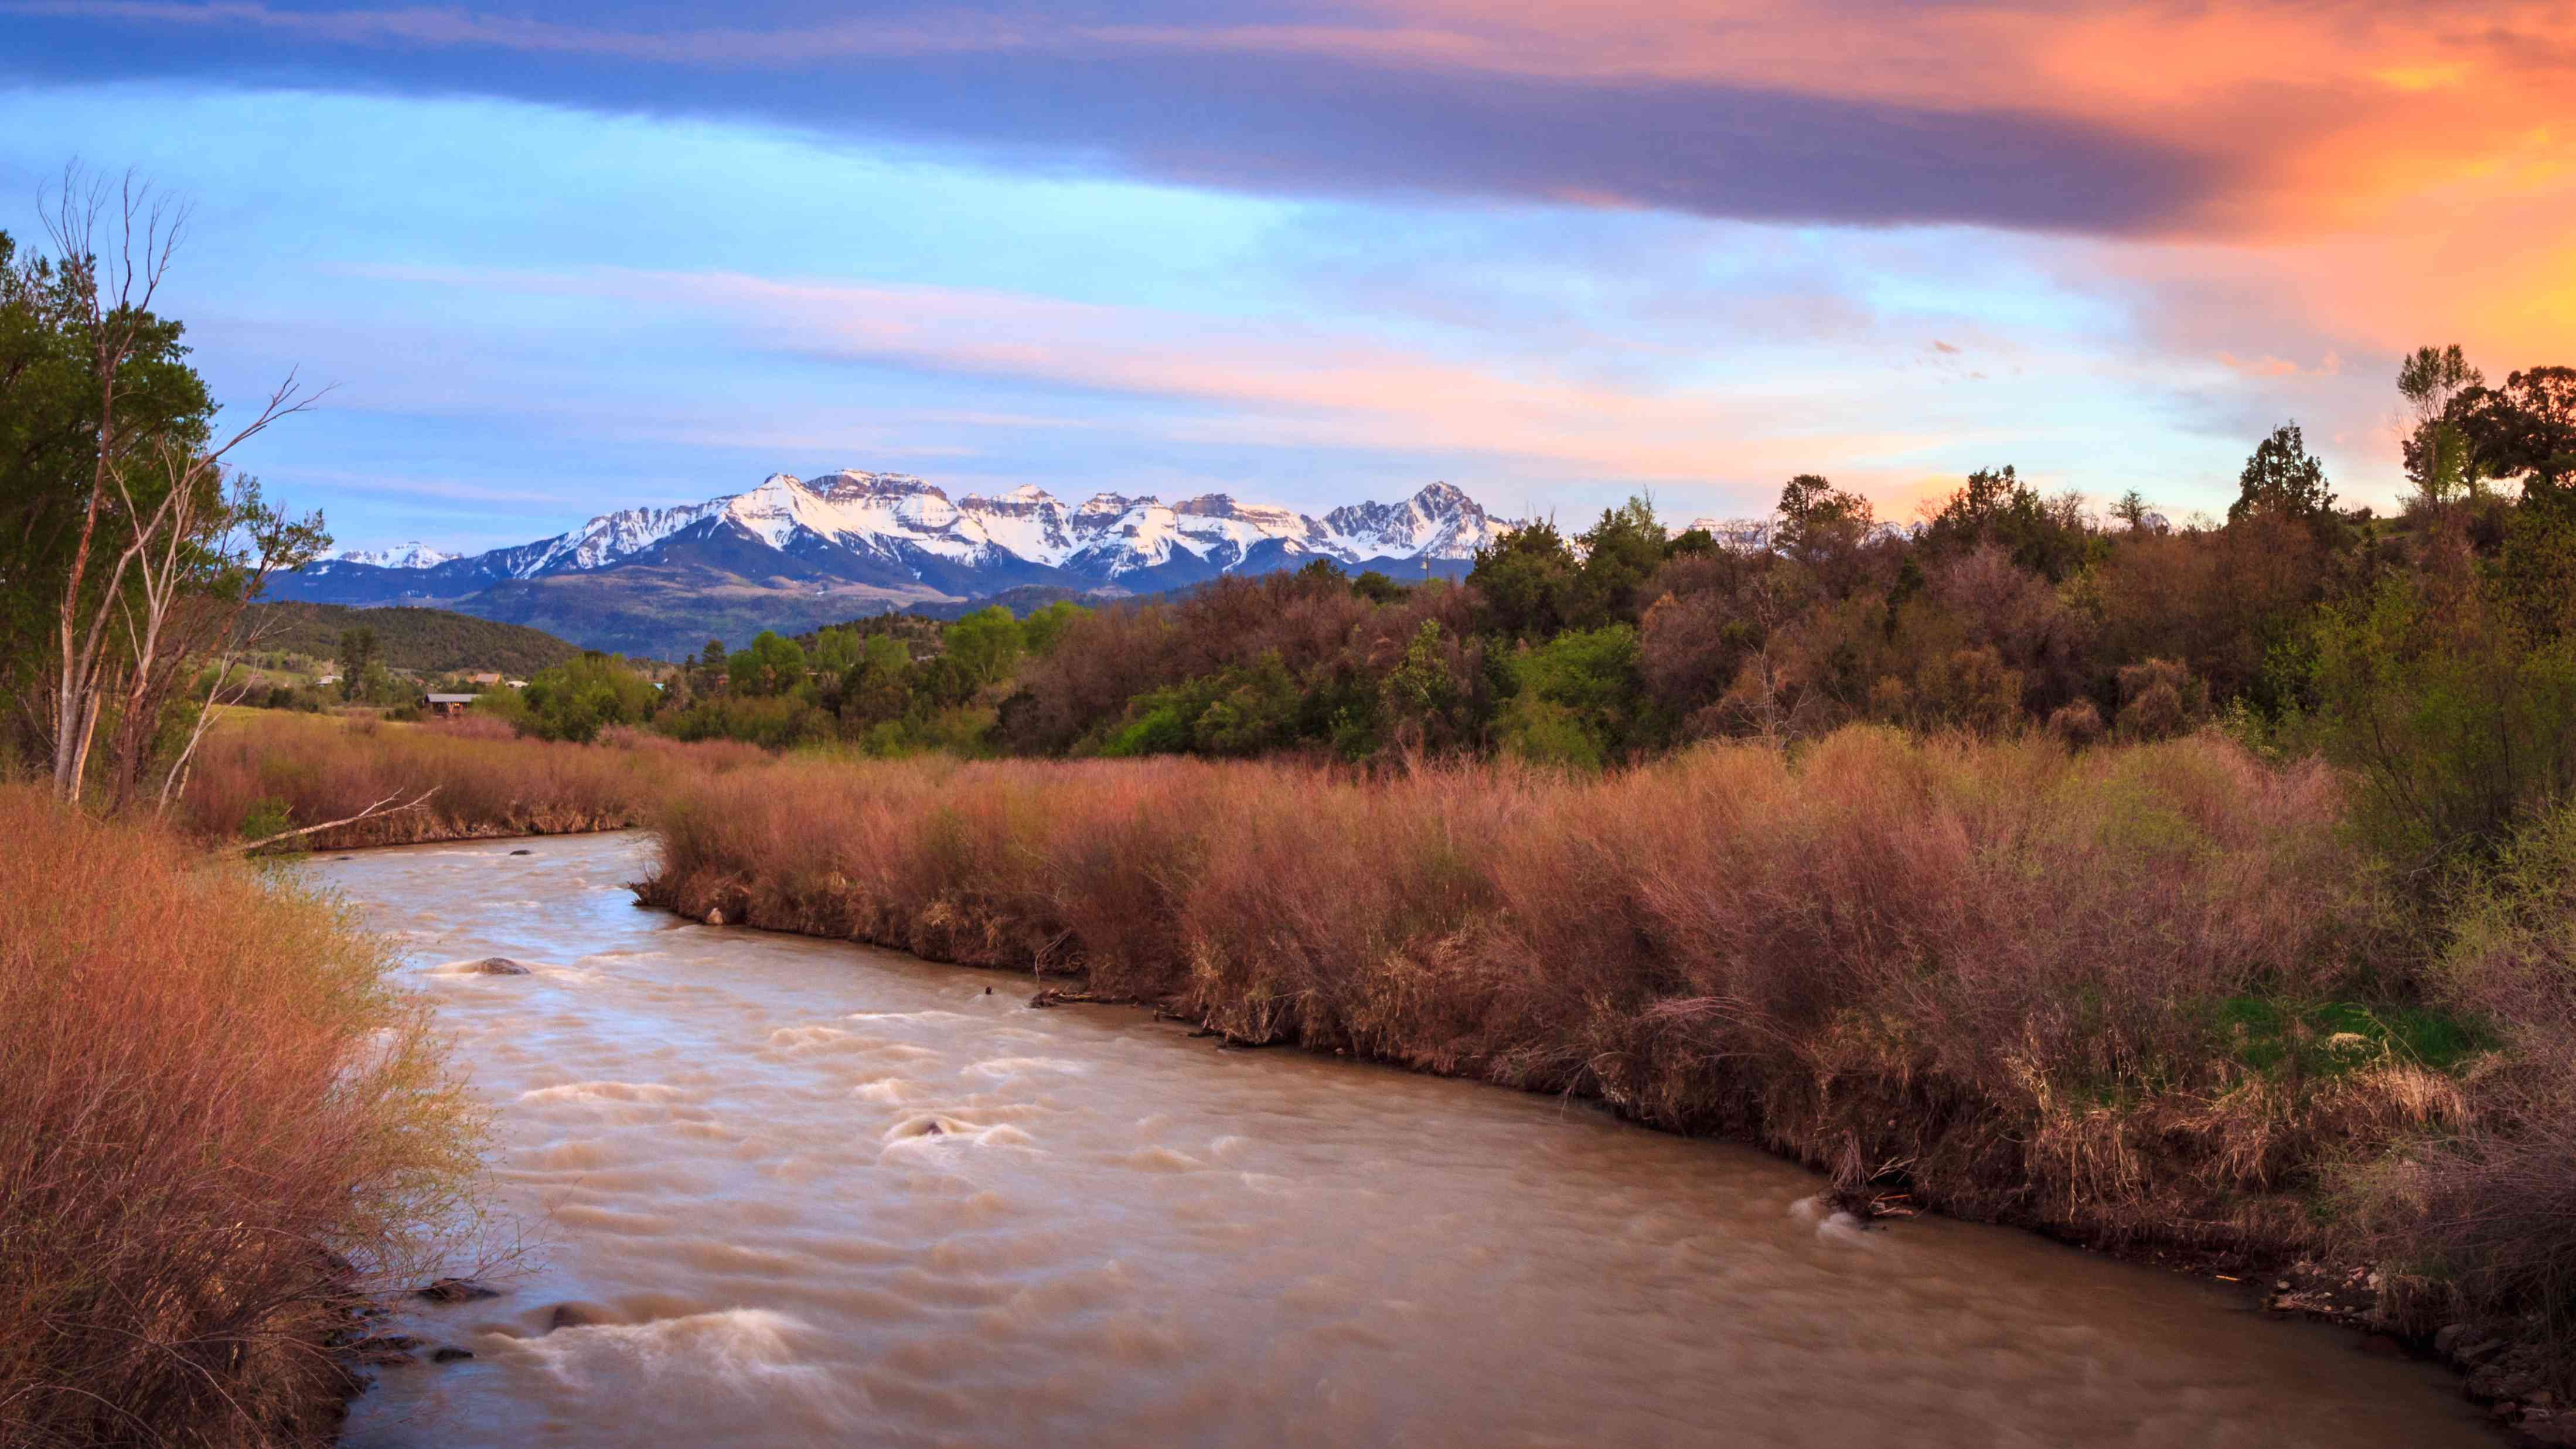 Sunset on the Uncompahgre River